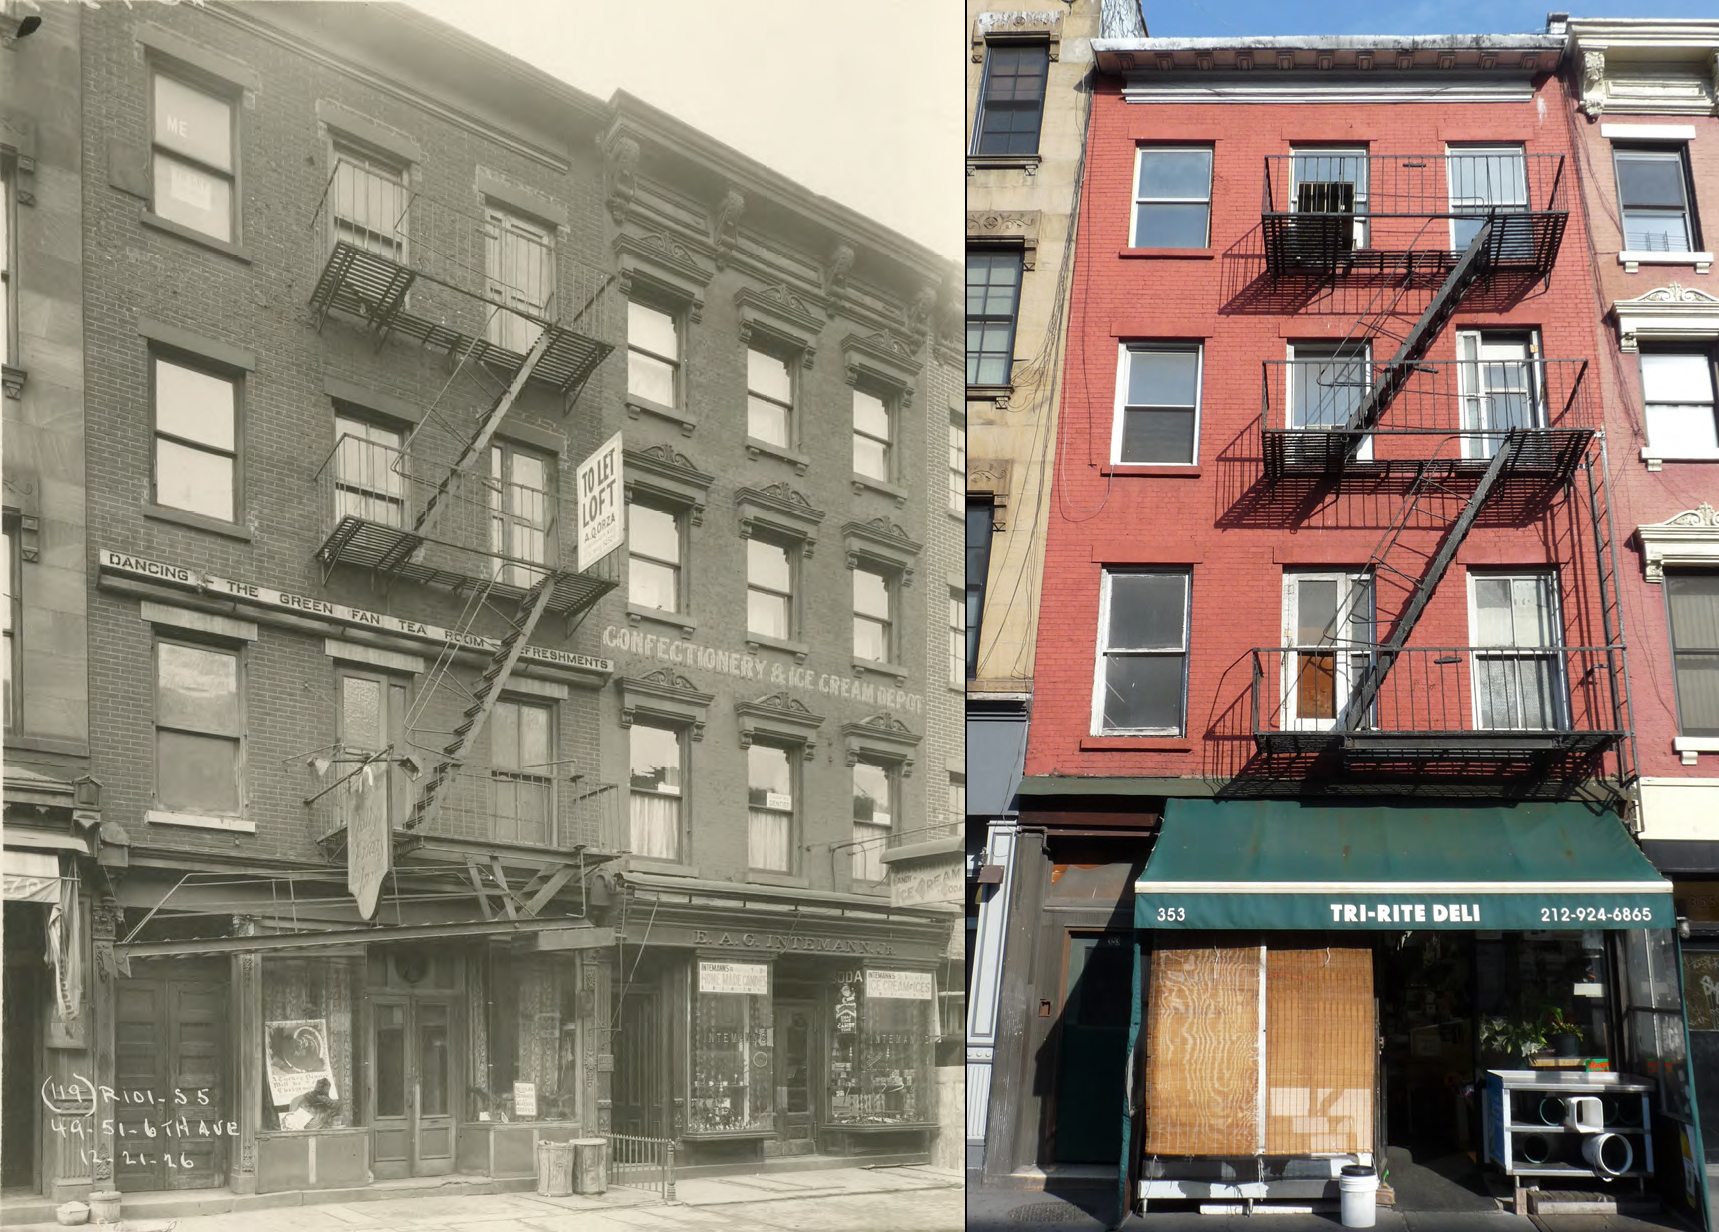 353 Sixth Avenue, 1926 and present